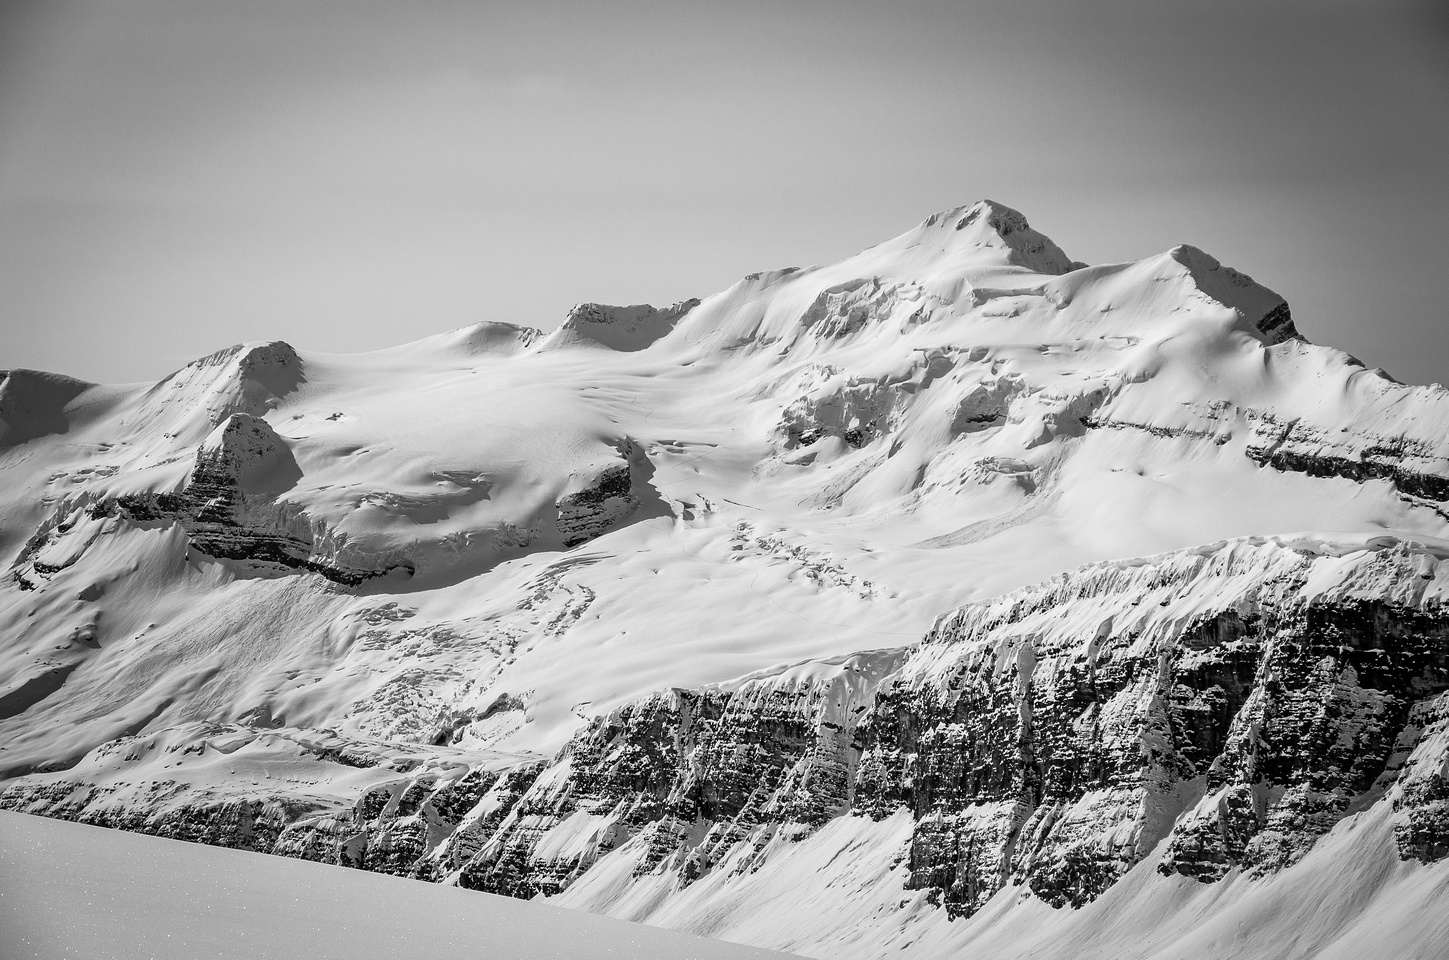 Balfour - king of the Wapta Icefield - stole the show this day. IMHO it's one of the sexiest peaks around.